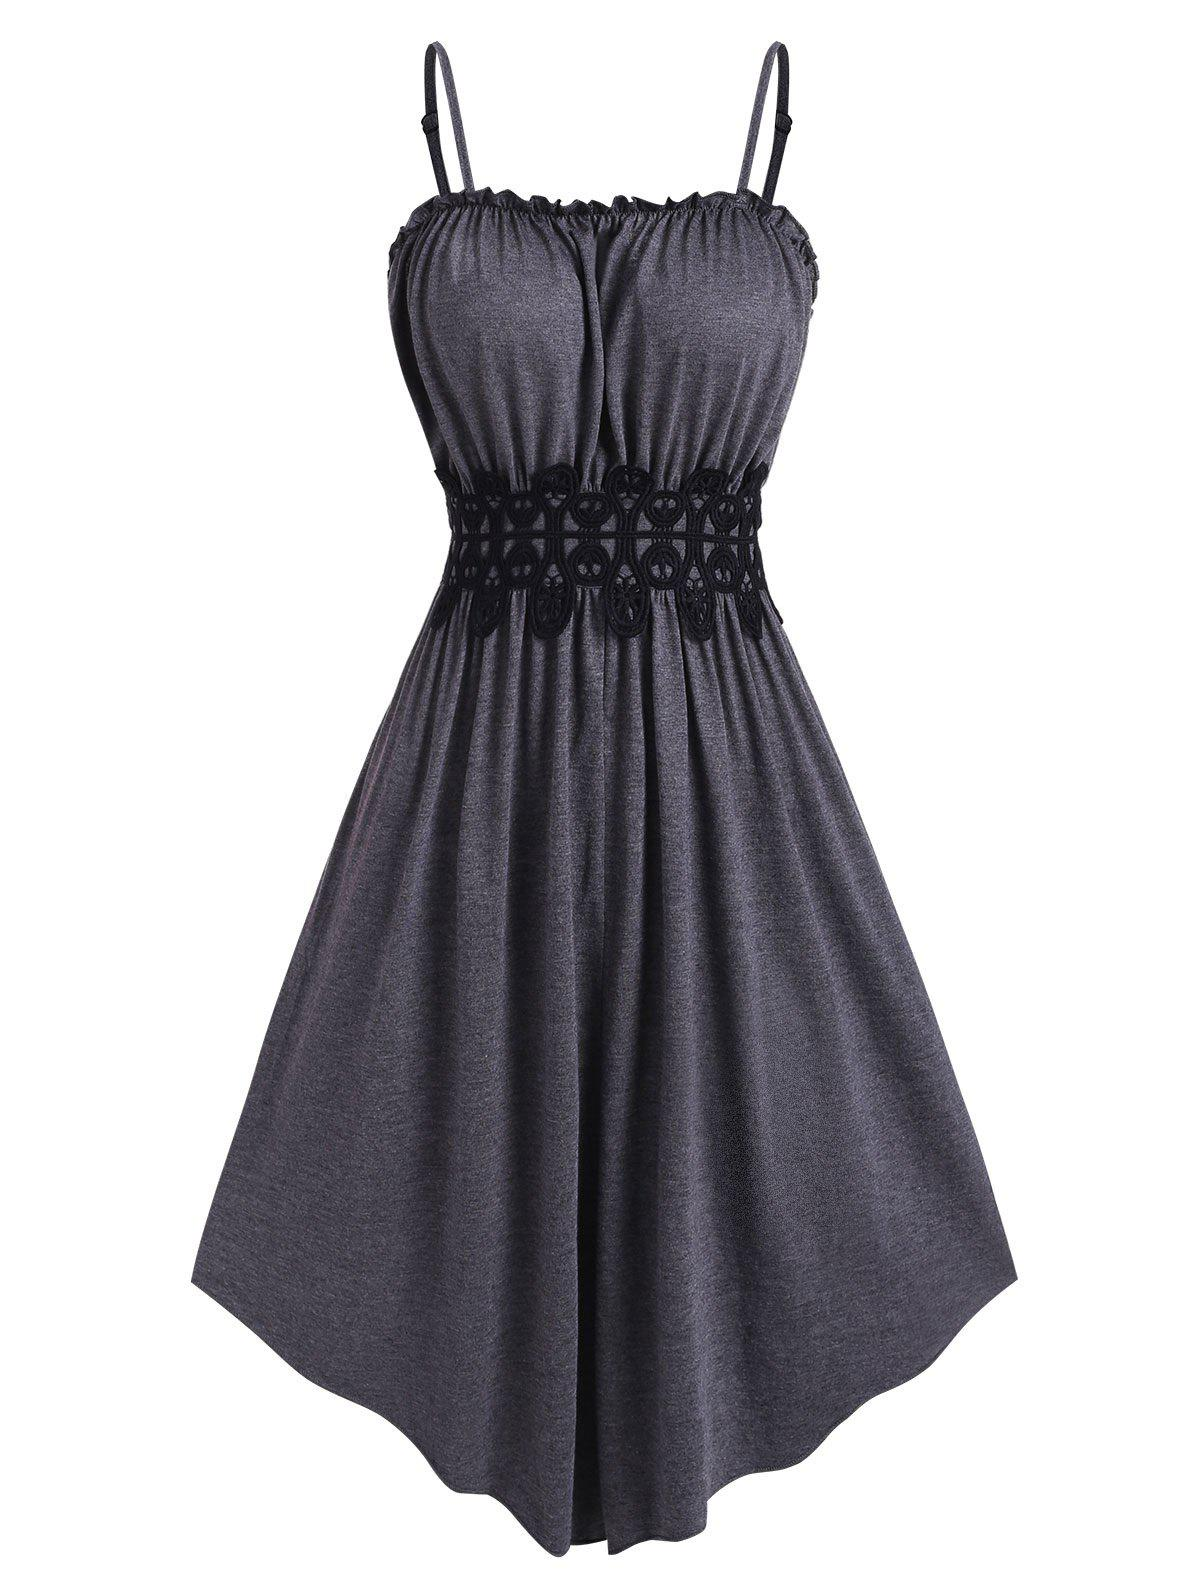 Frilled Lace Applique Cami Dress - CLOUDY GRAY XL